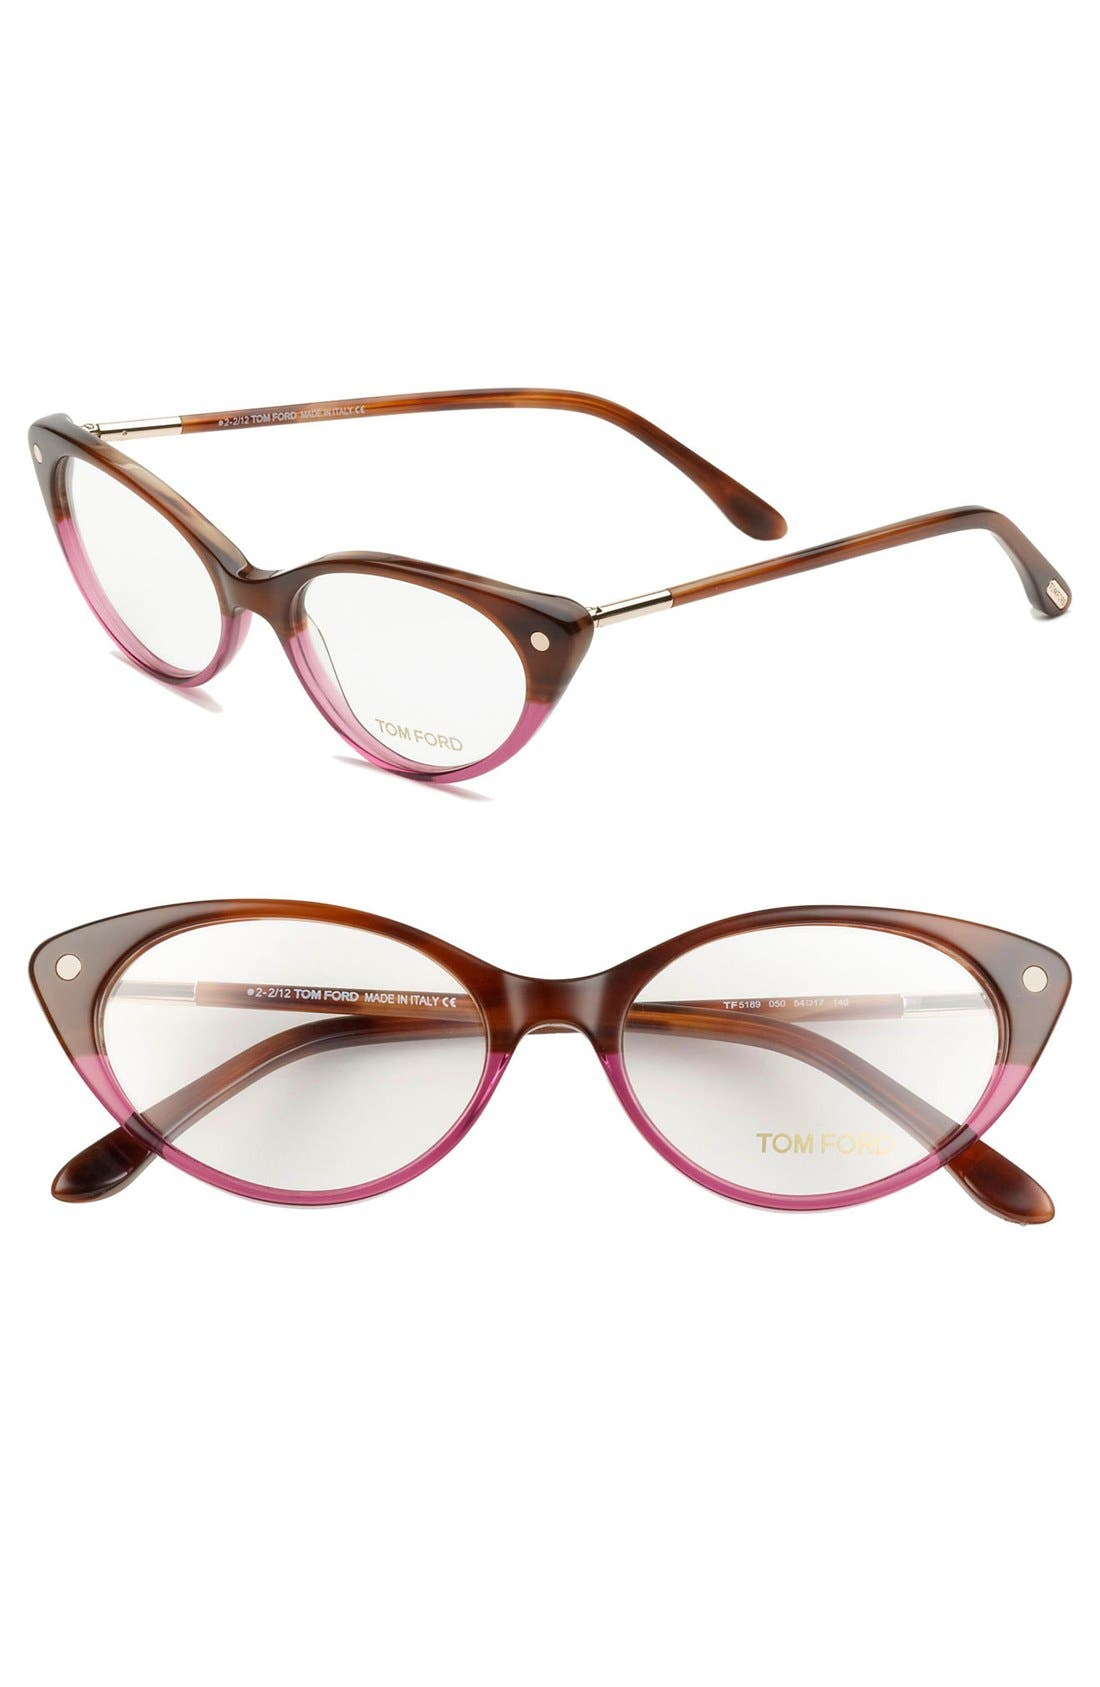 Alternate Image 1 Selected - Tom Ford 54mm Optical Glasses (Online Only)